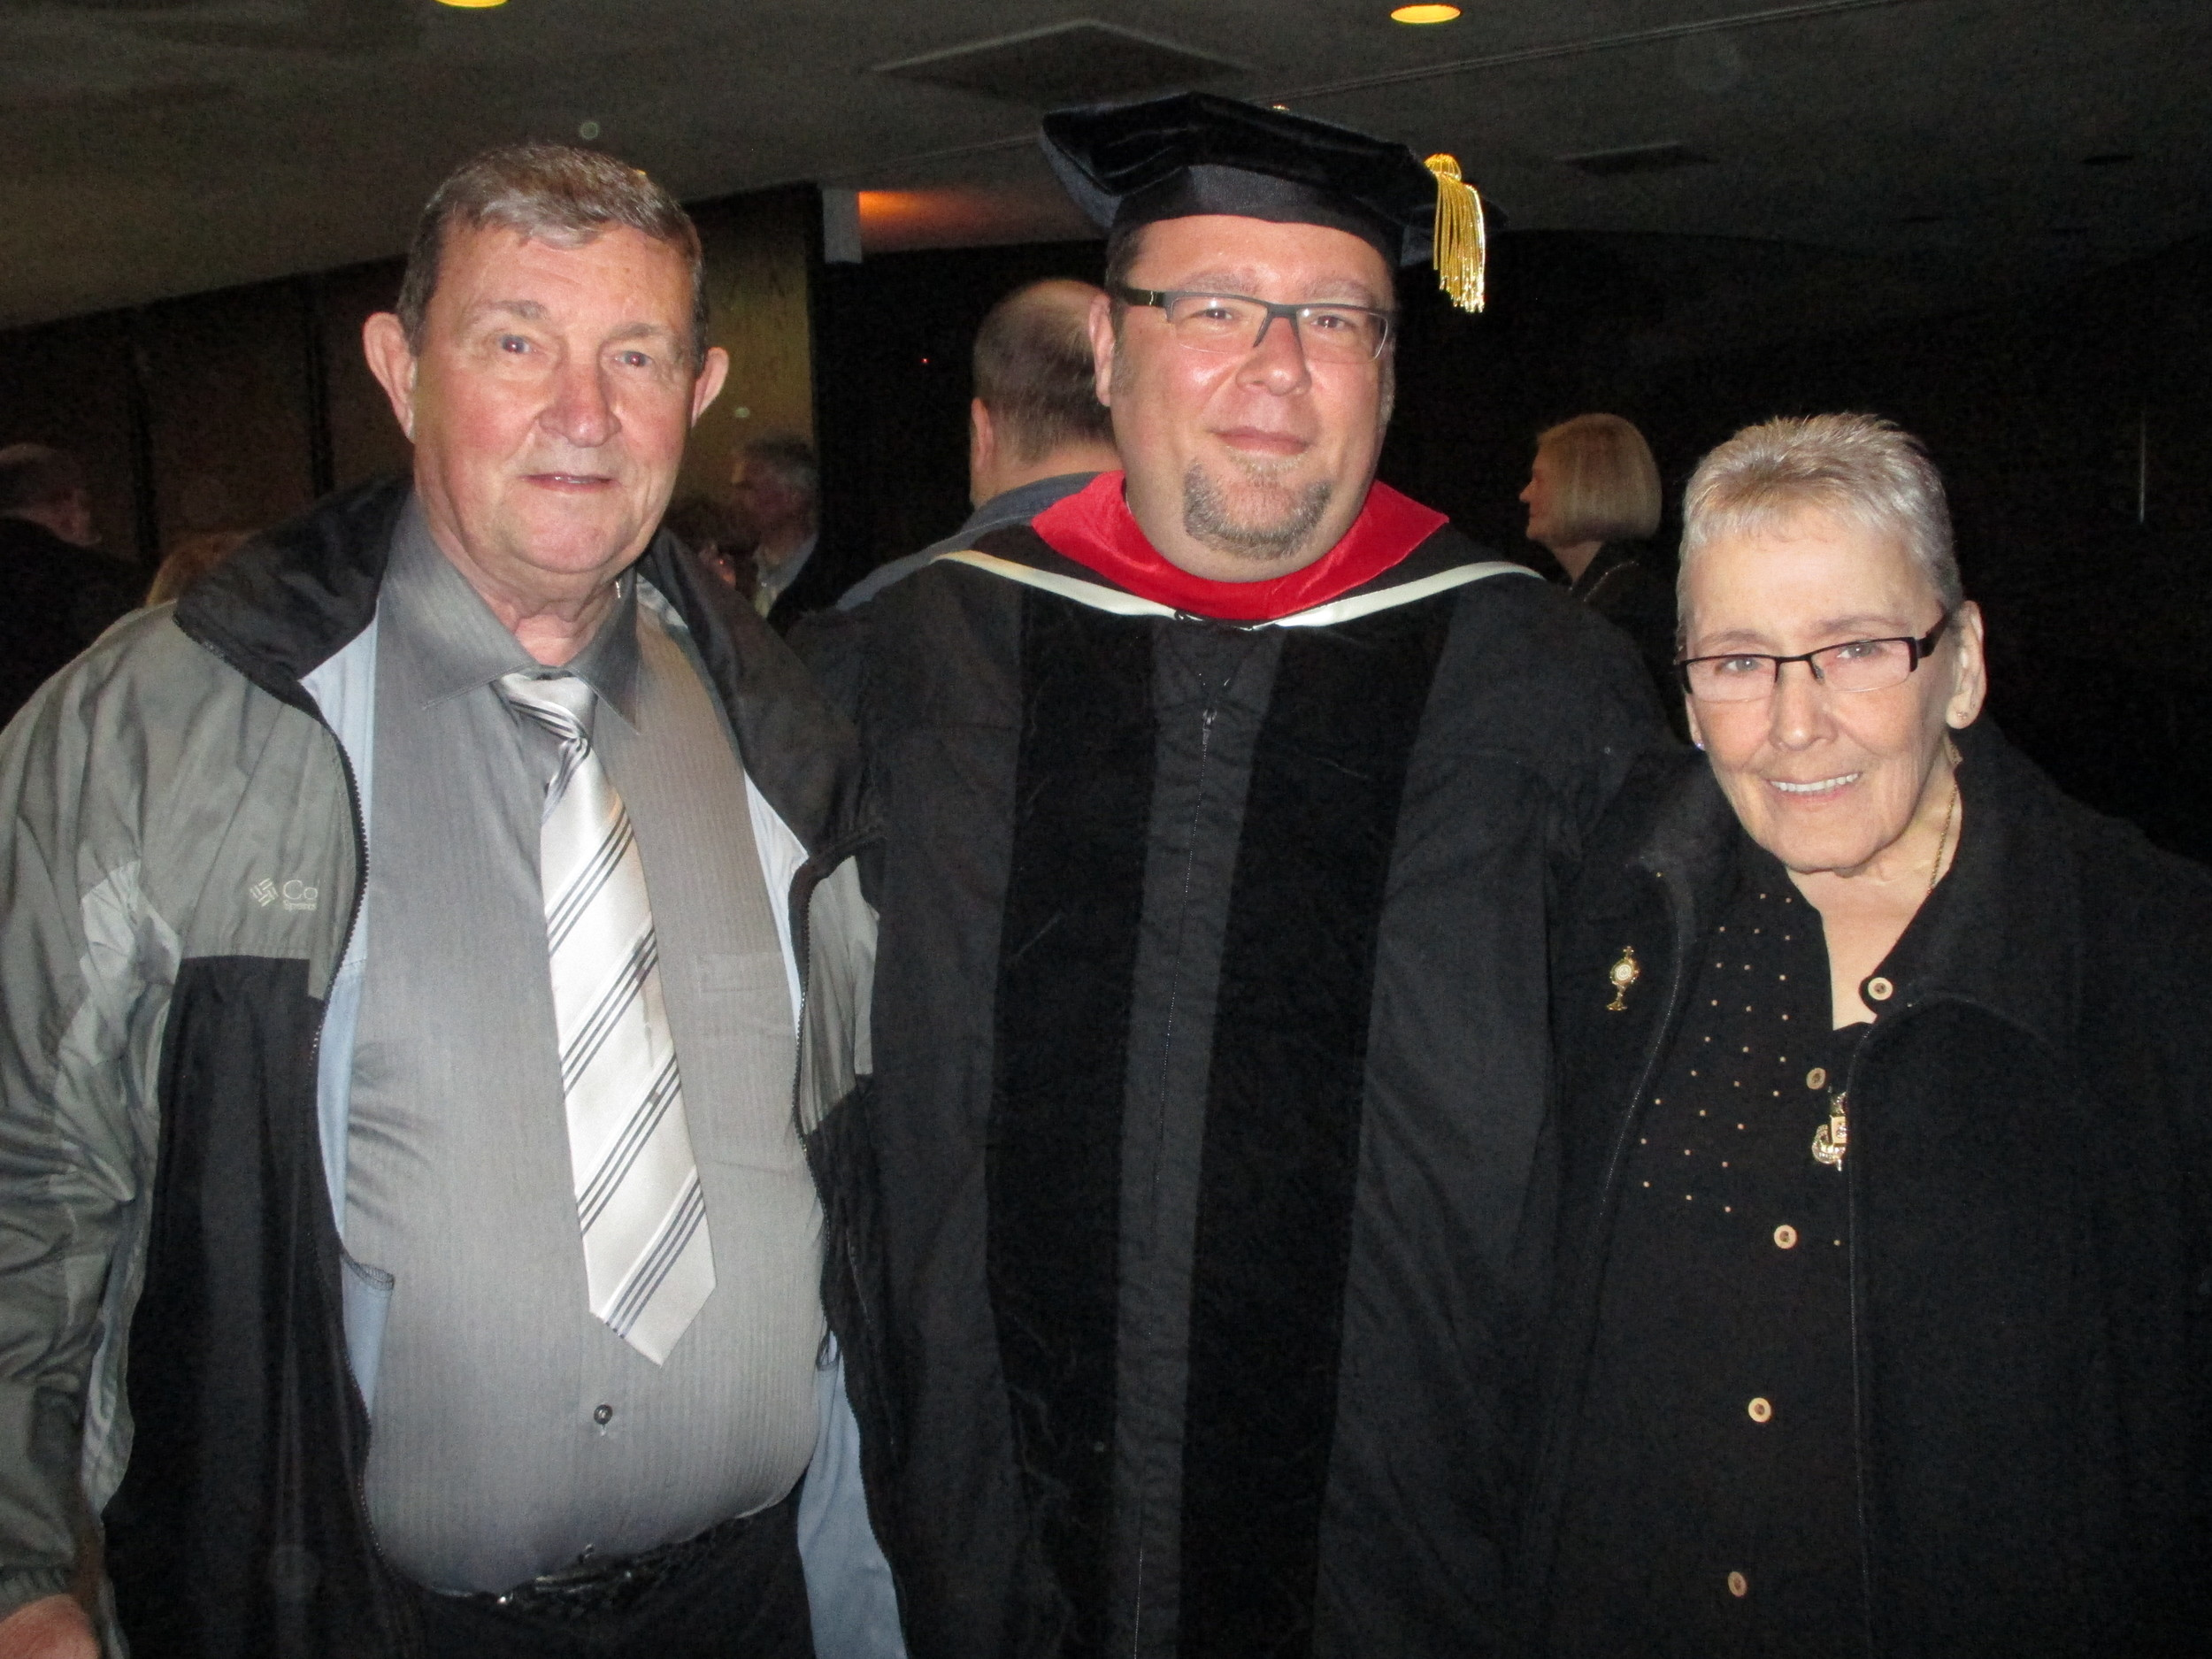 Rev. Rich Young, O.S.A., D.Min., pictured with parents Rich & Barb Young, was awarded his doctorate from Catholic Theological Union on May 15, 2014